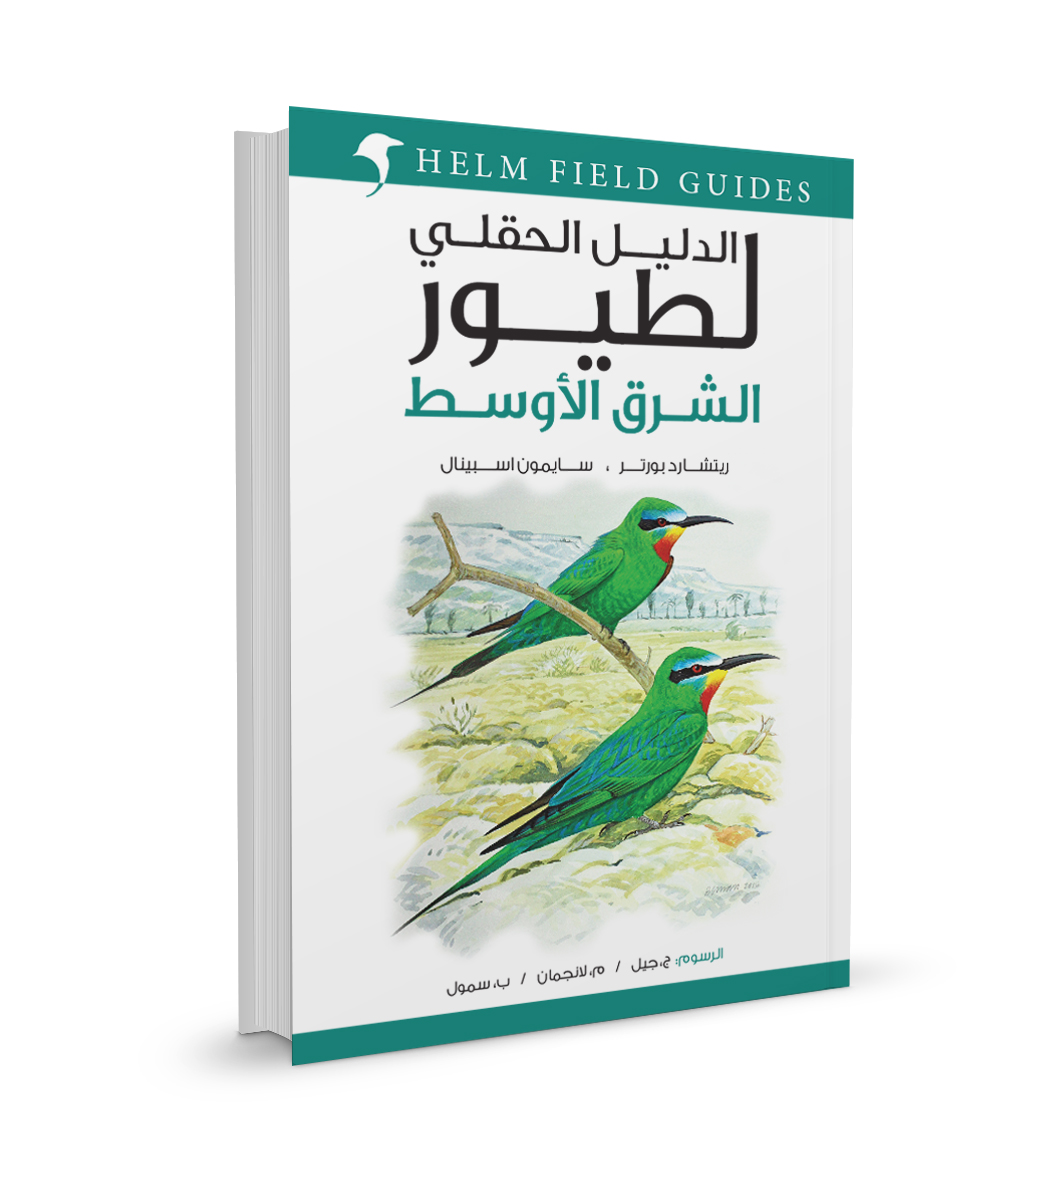 birds_of_the_middle_east_field_guide.jpeg